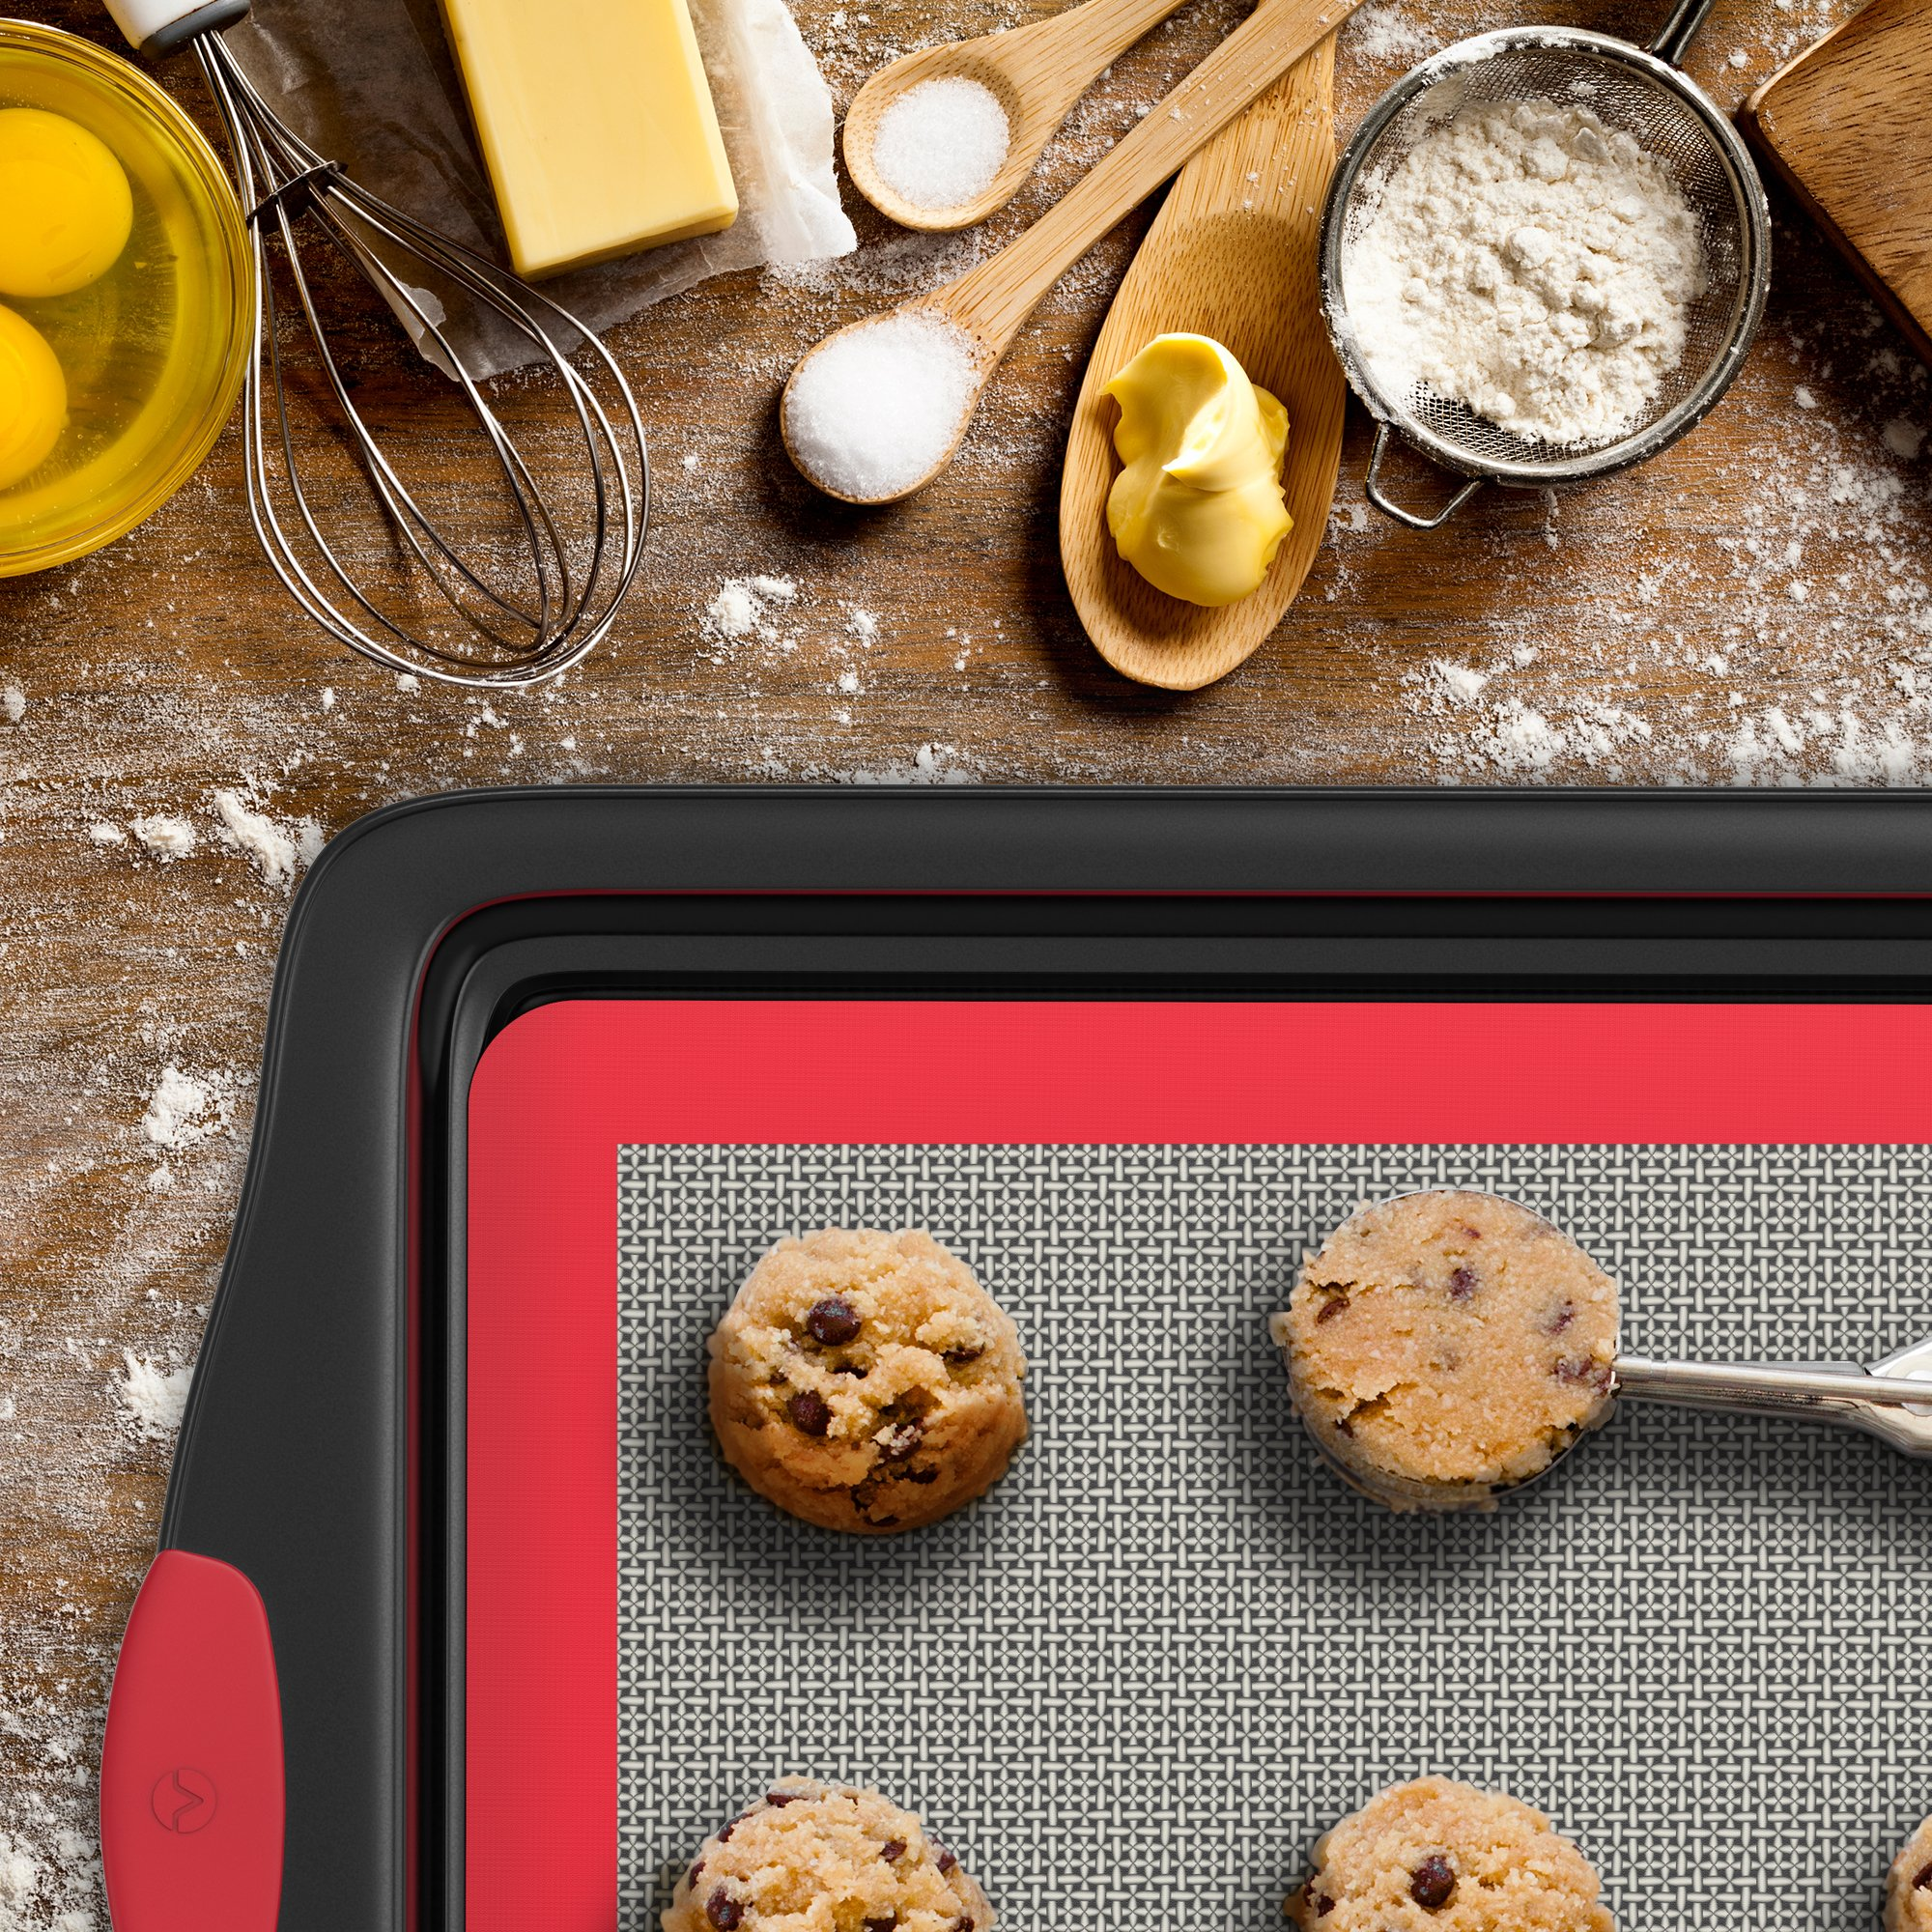 Vremi 3 Piece Baking Sheets Nonstick Set - Professional Non Stick Sheet Pan Set for Baking - Carbon Steel Baking Pans Cookie Sheets with Red Silicone Handles - has Quarter and Half Sheet Pans by Vremi (Image #6)